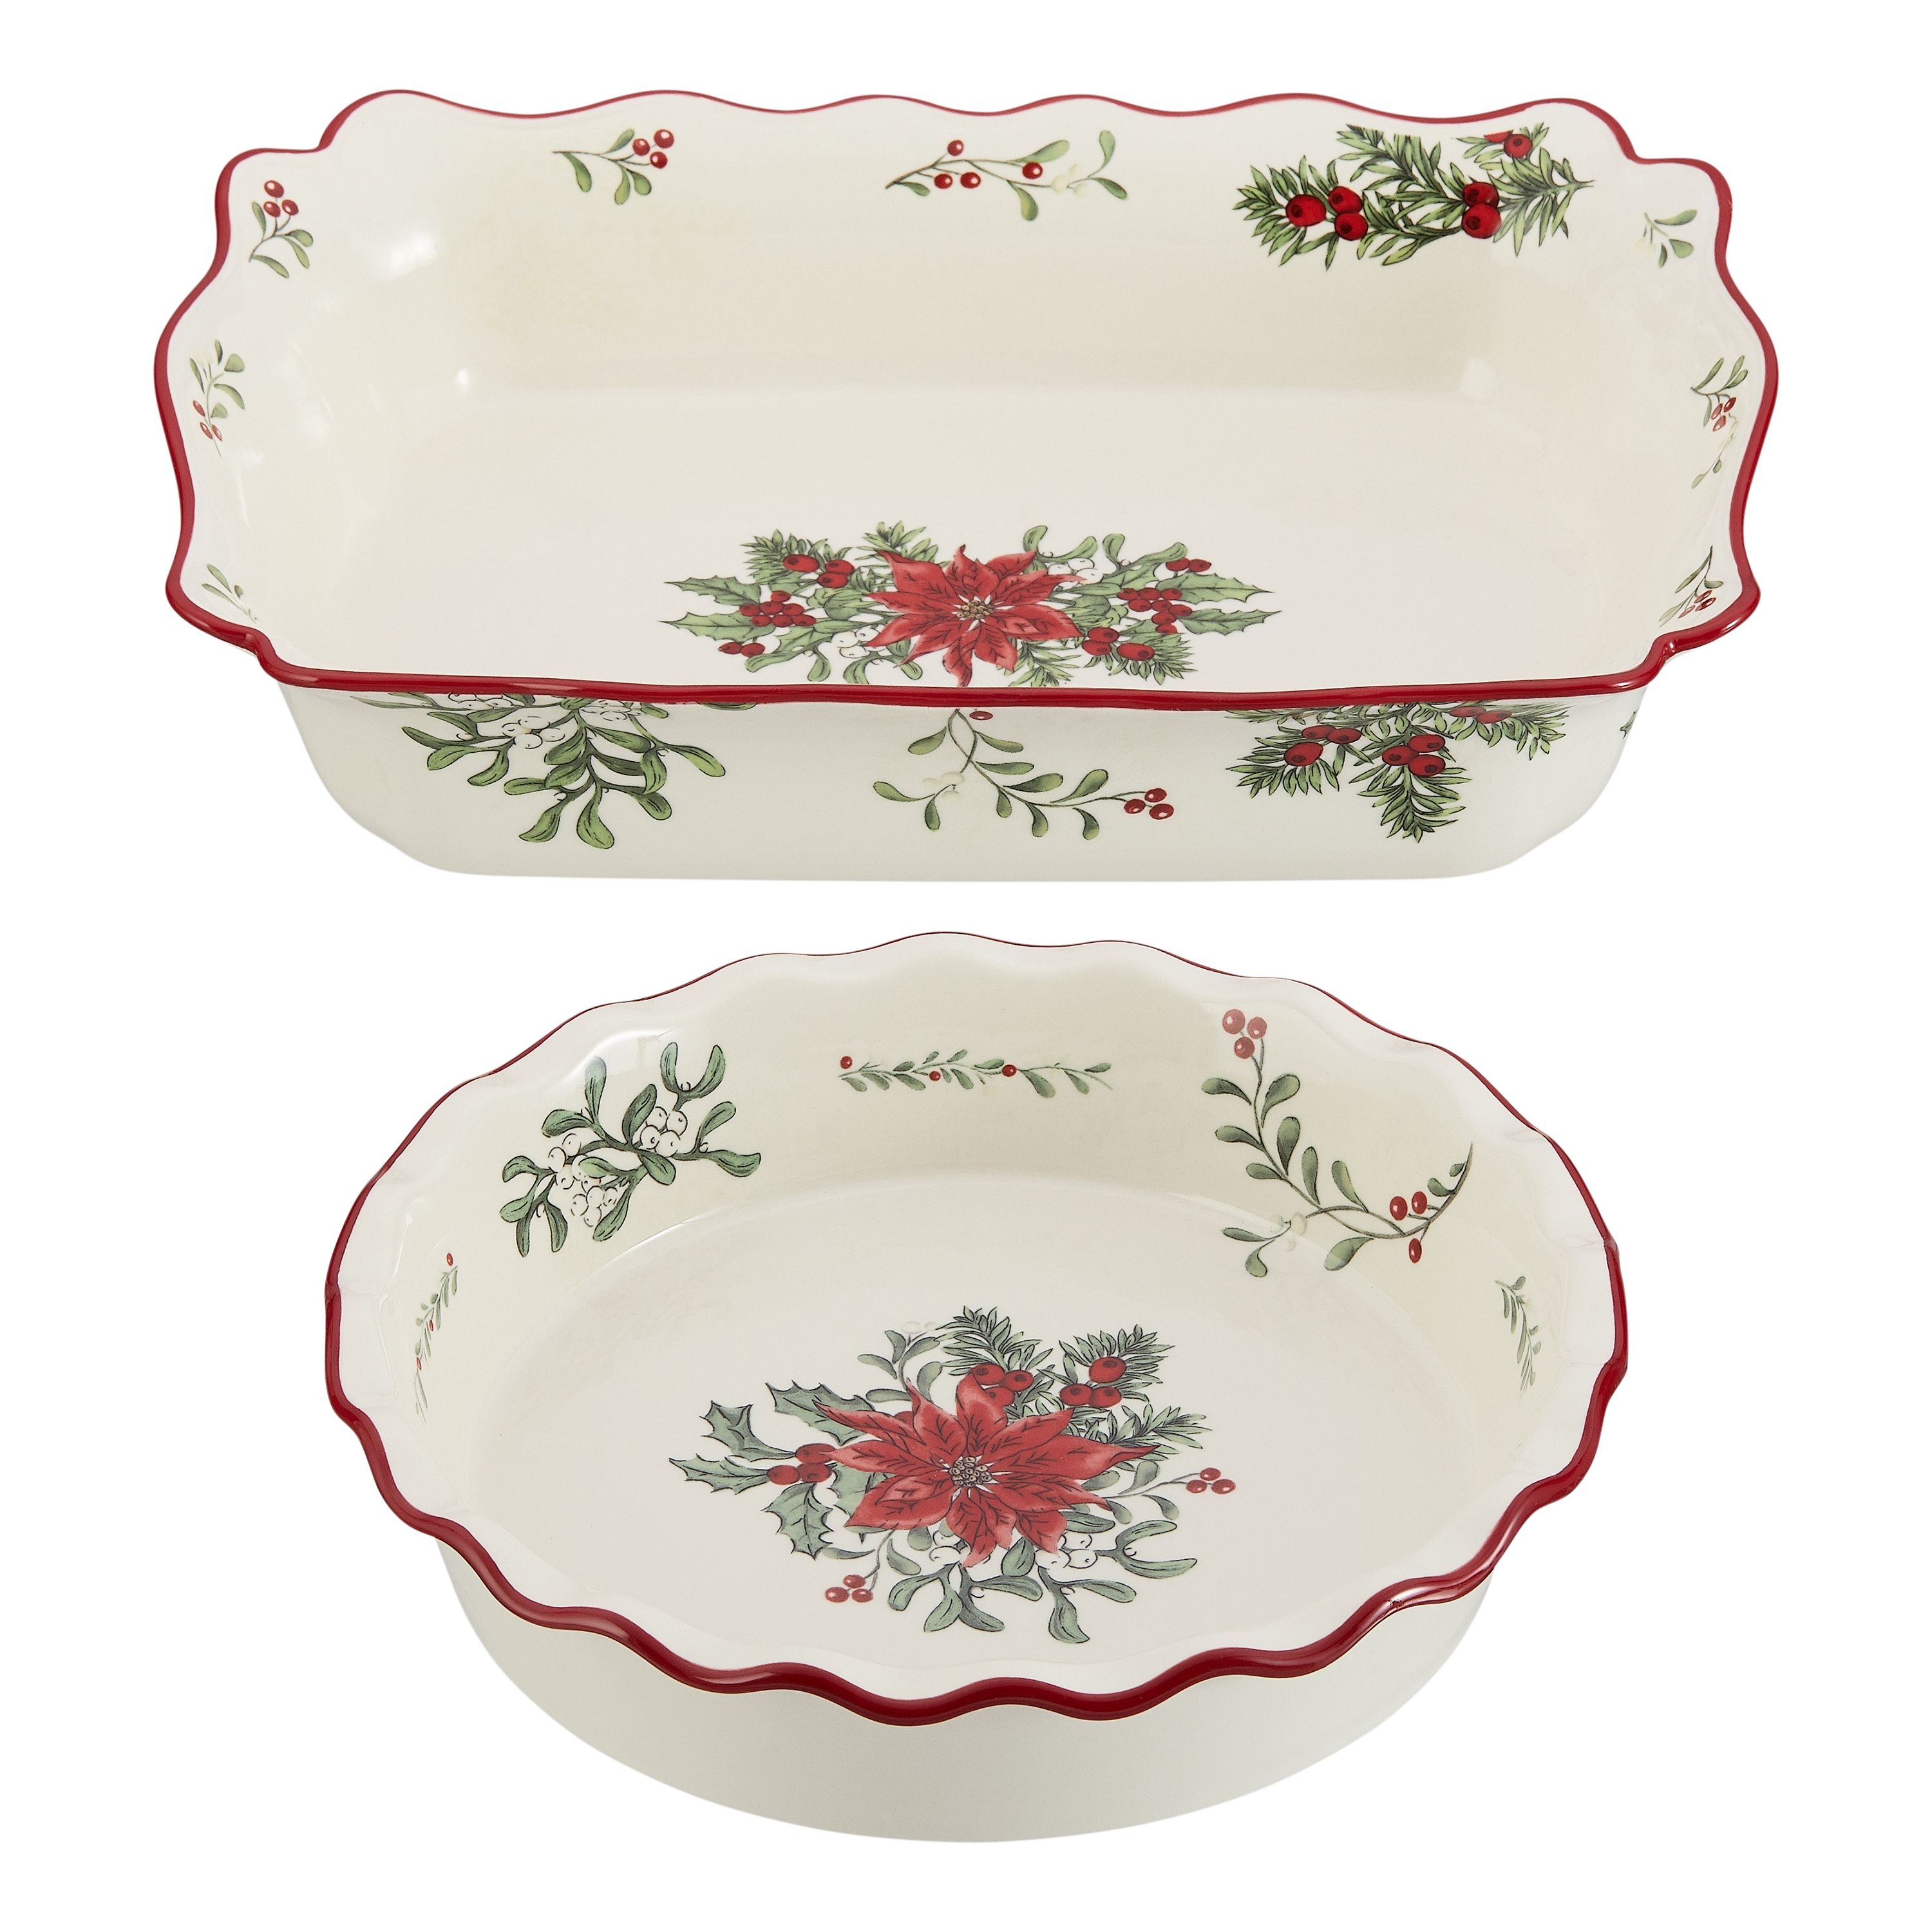 53138ed7dc3082f745fbcd19237898ae - Better Homes And Gardens Heritage 12 Piece Dinnerware Set